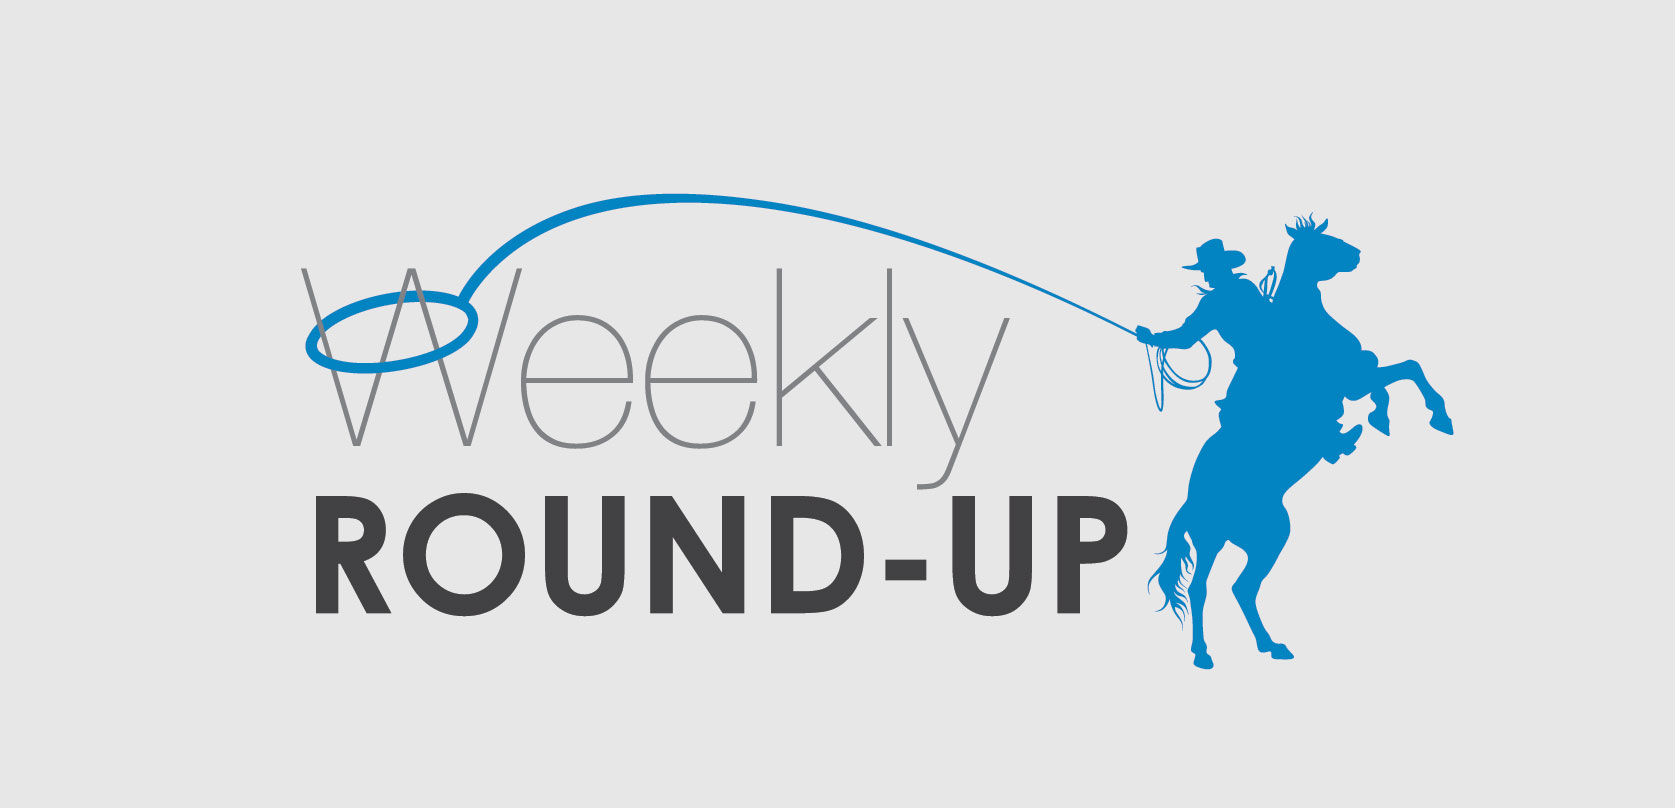 Weekly Round-Up: On Motivational Leadership, Defining Teamwork & the Science of Workplace Morale